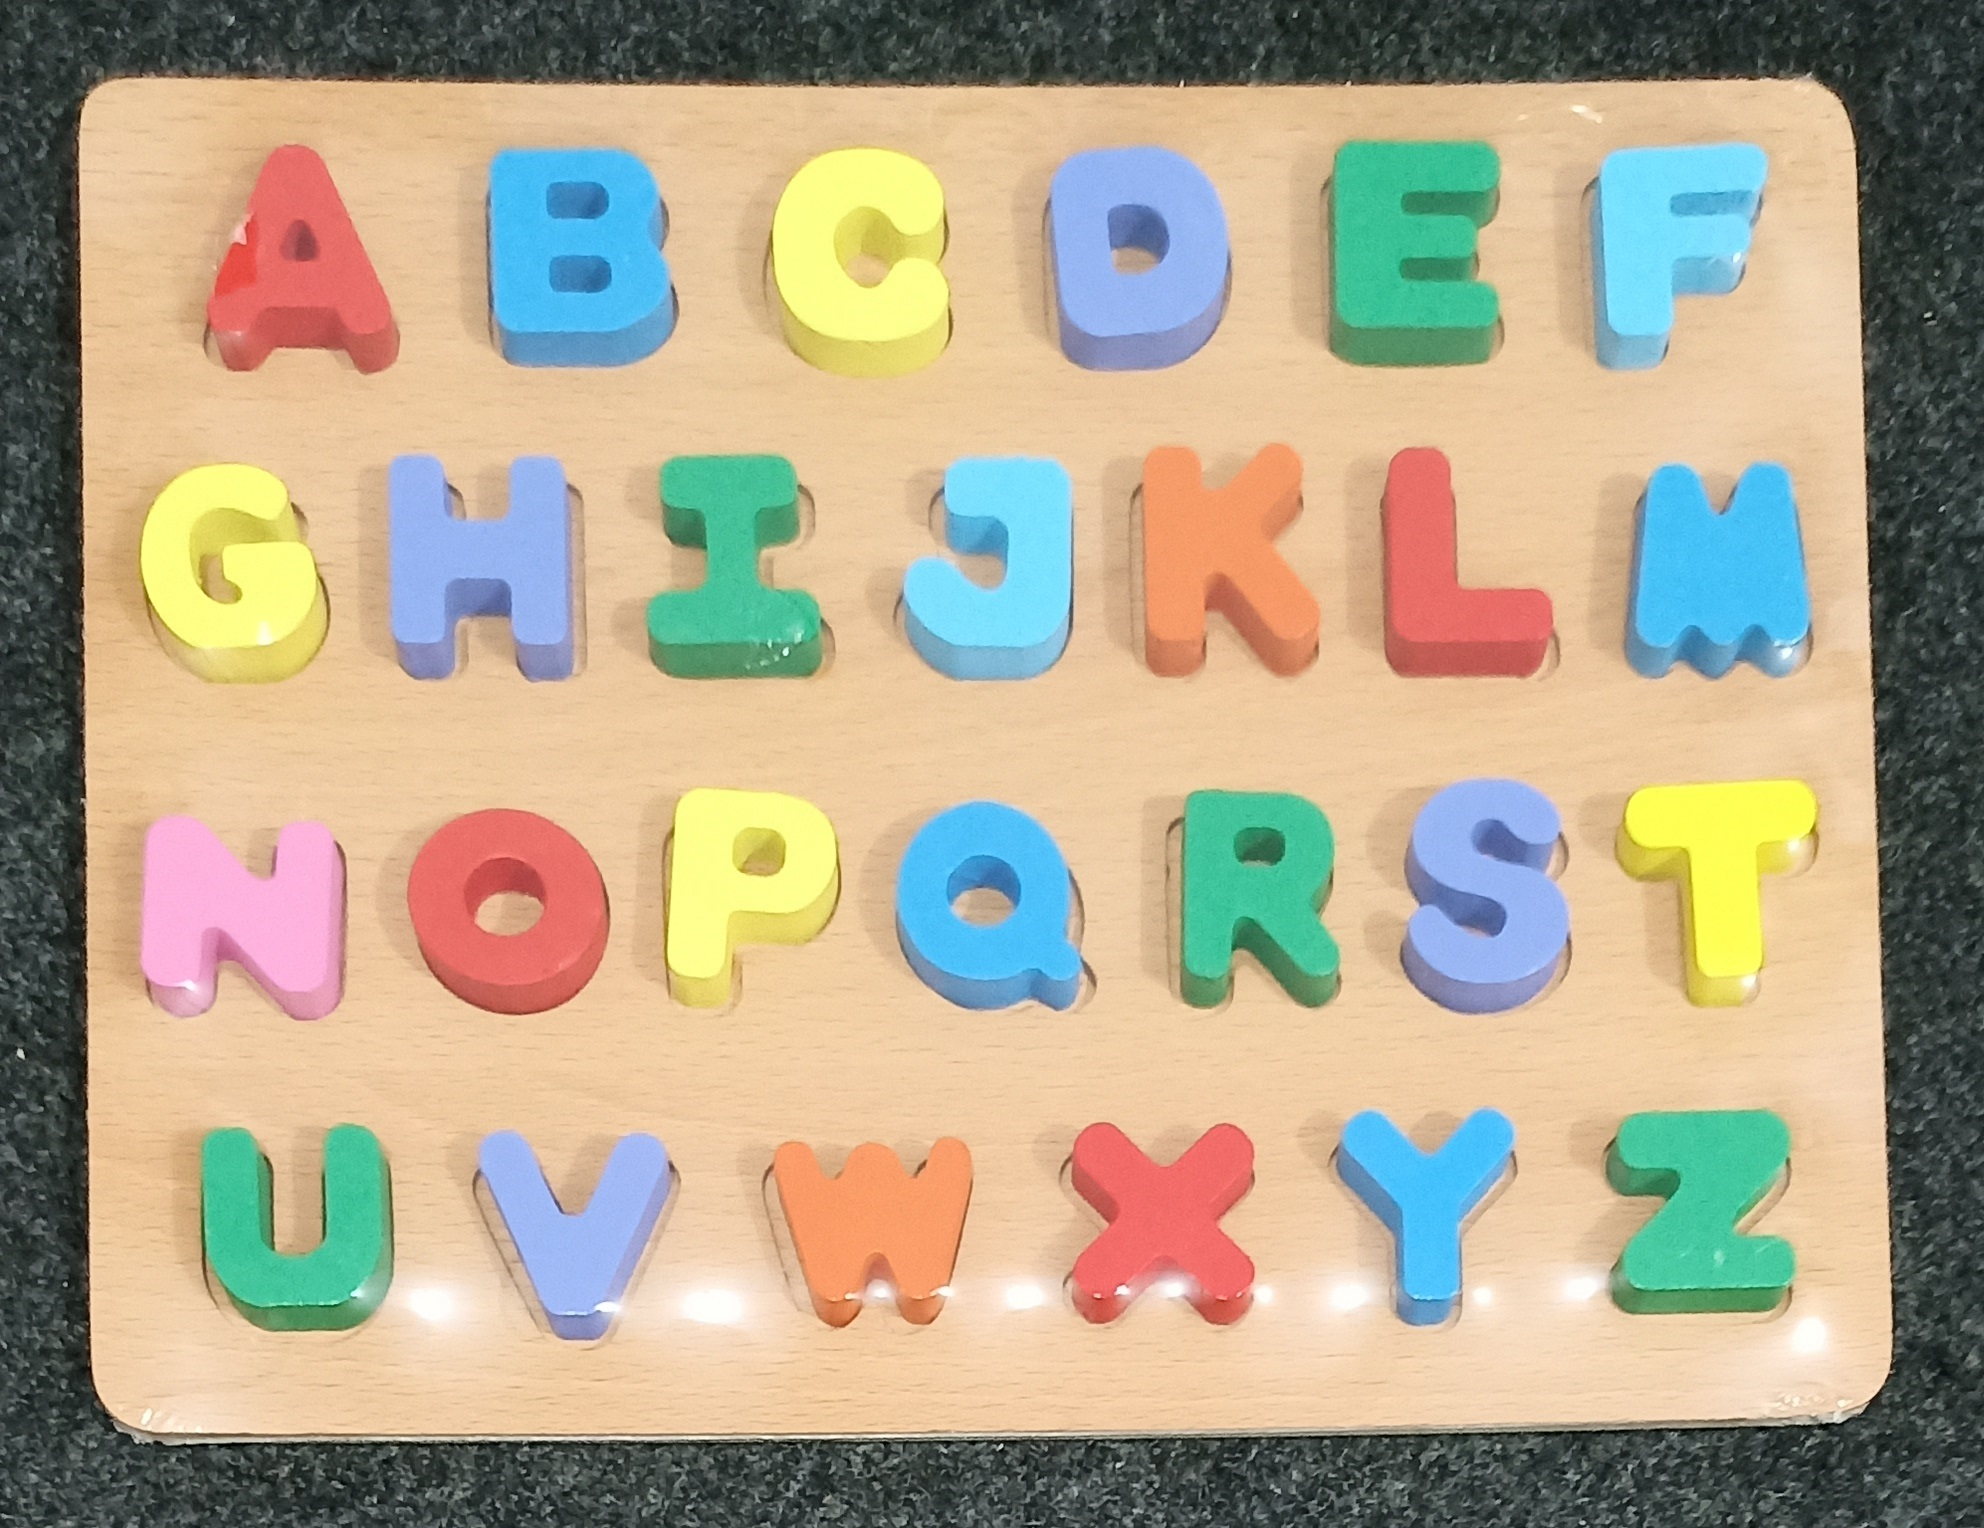 Wooden Capital Alphabets Puzzle Set for Toddlers ABC Wooden Puzzle Board Game | 3D Alphabet Letters Wooden | Early Childhood English learning Educational Toy | Colorful Preschool Learning Cognition Letters | Early Development Toy